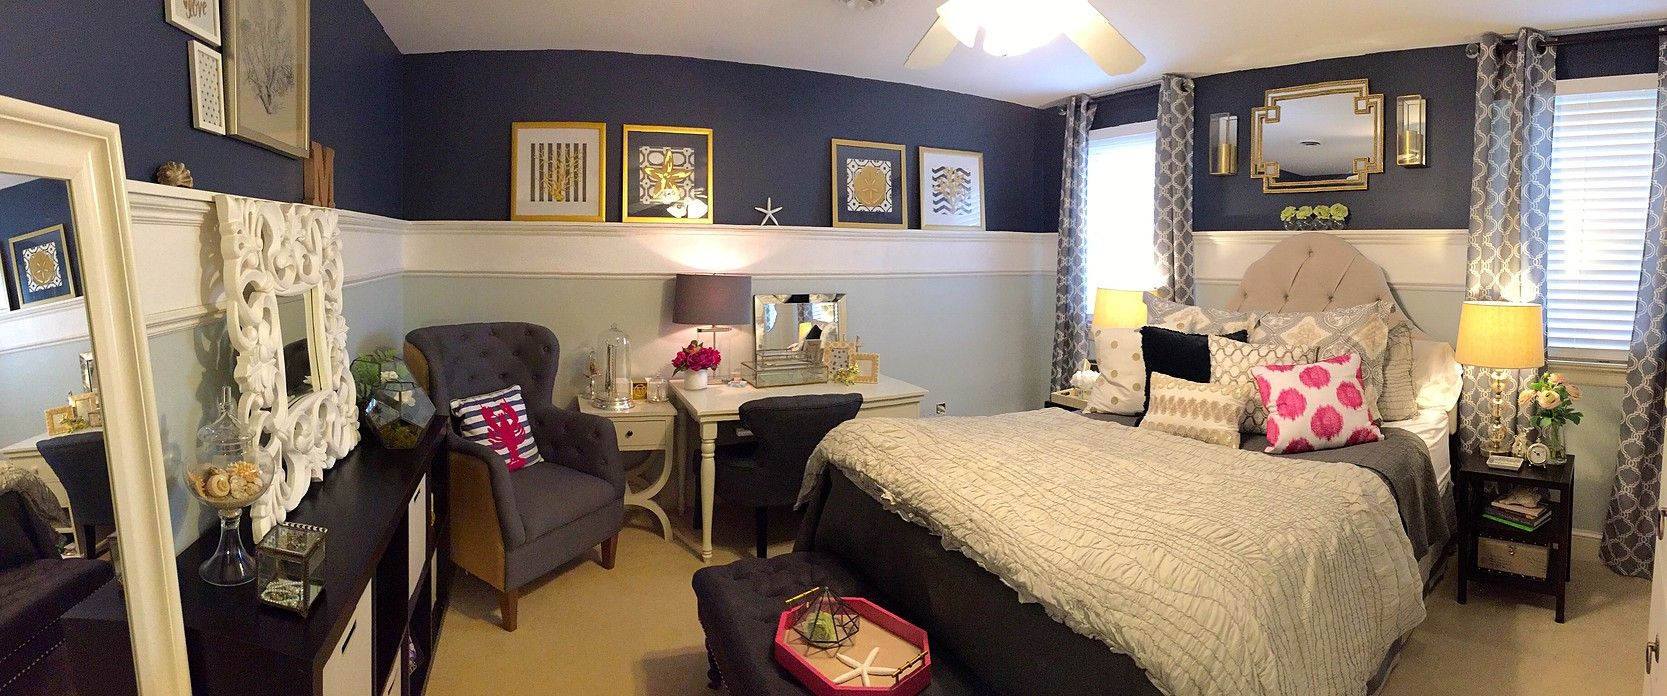 Teen Bedroom with Glam Accents Webb Smith